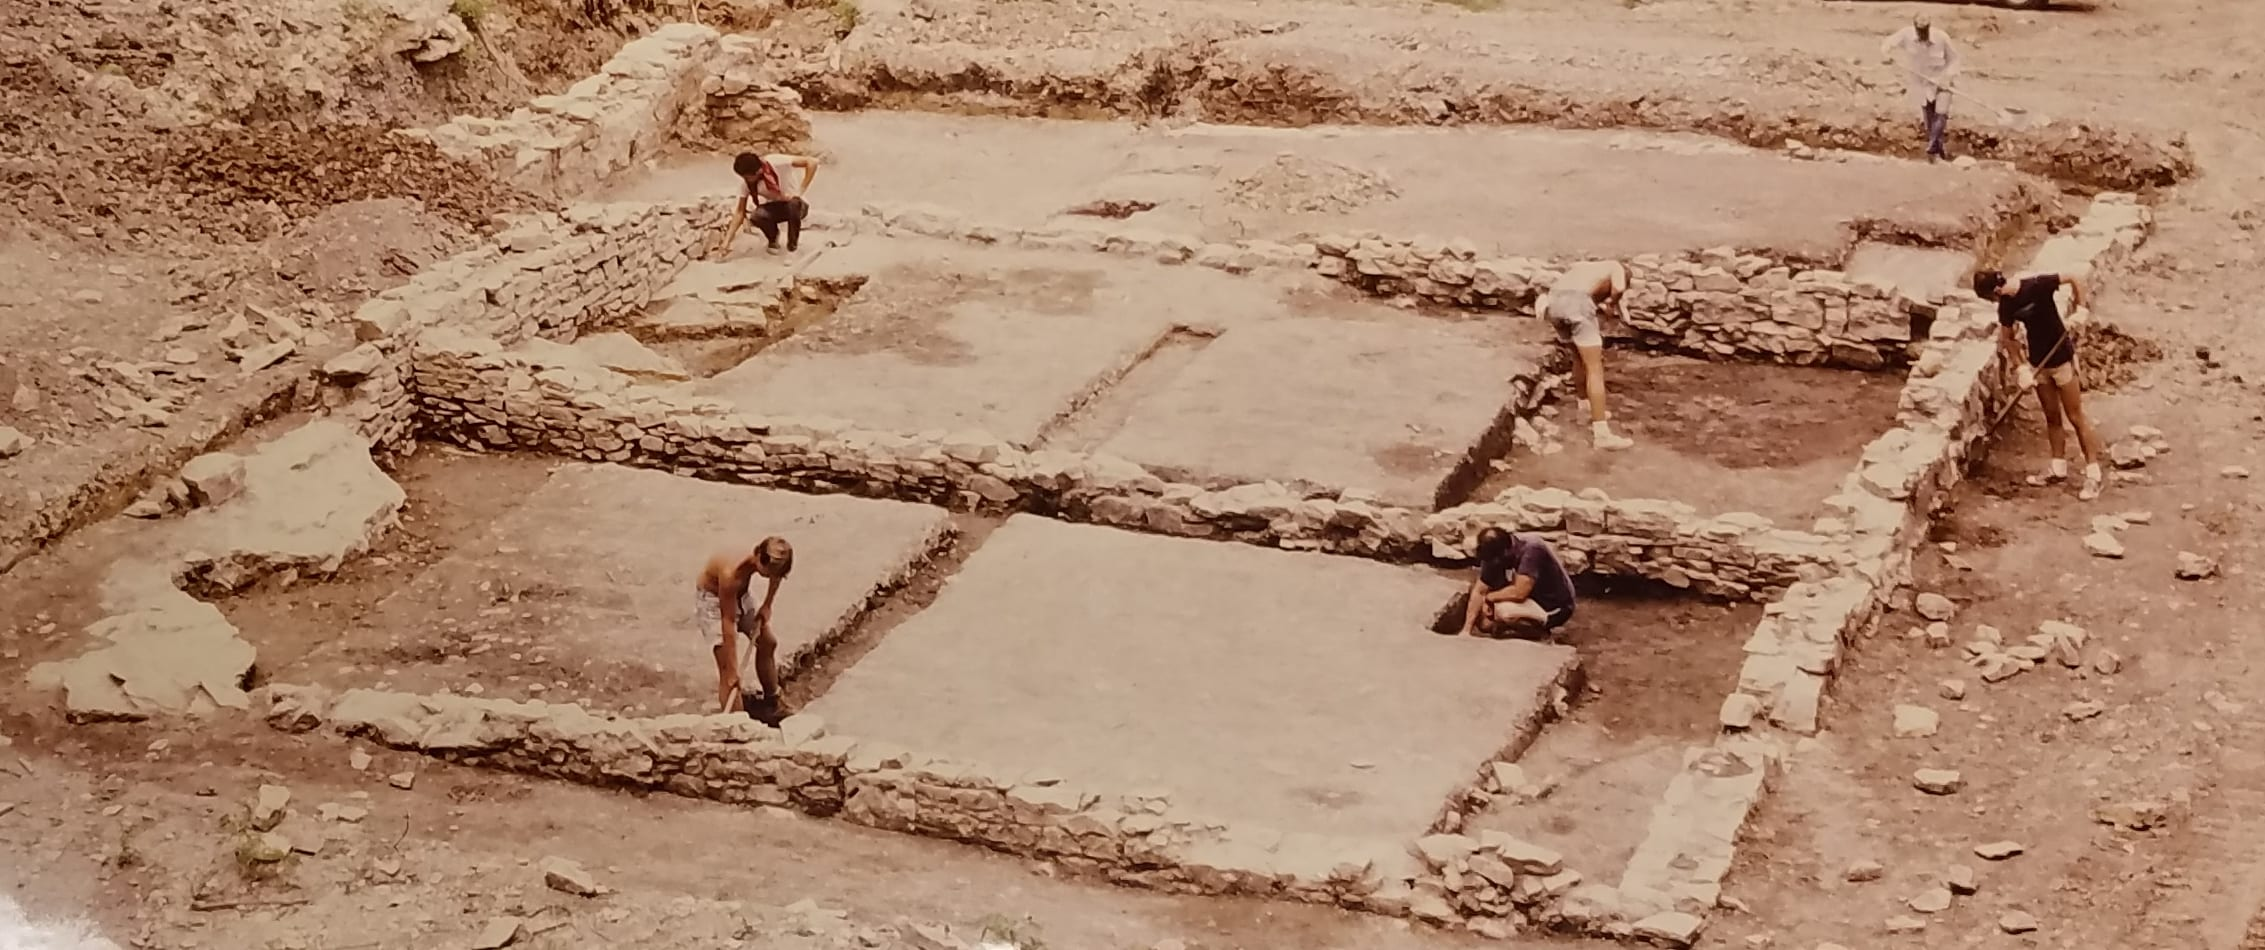 Archaelogical excavation of ruins in the 1980s